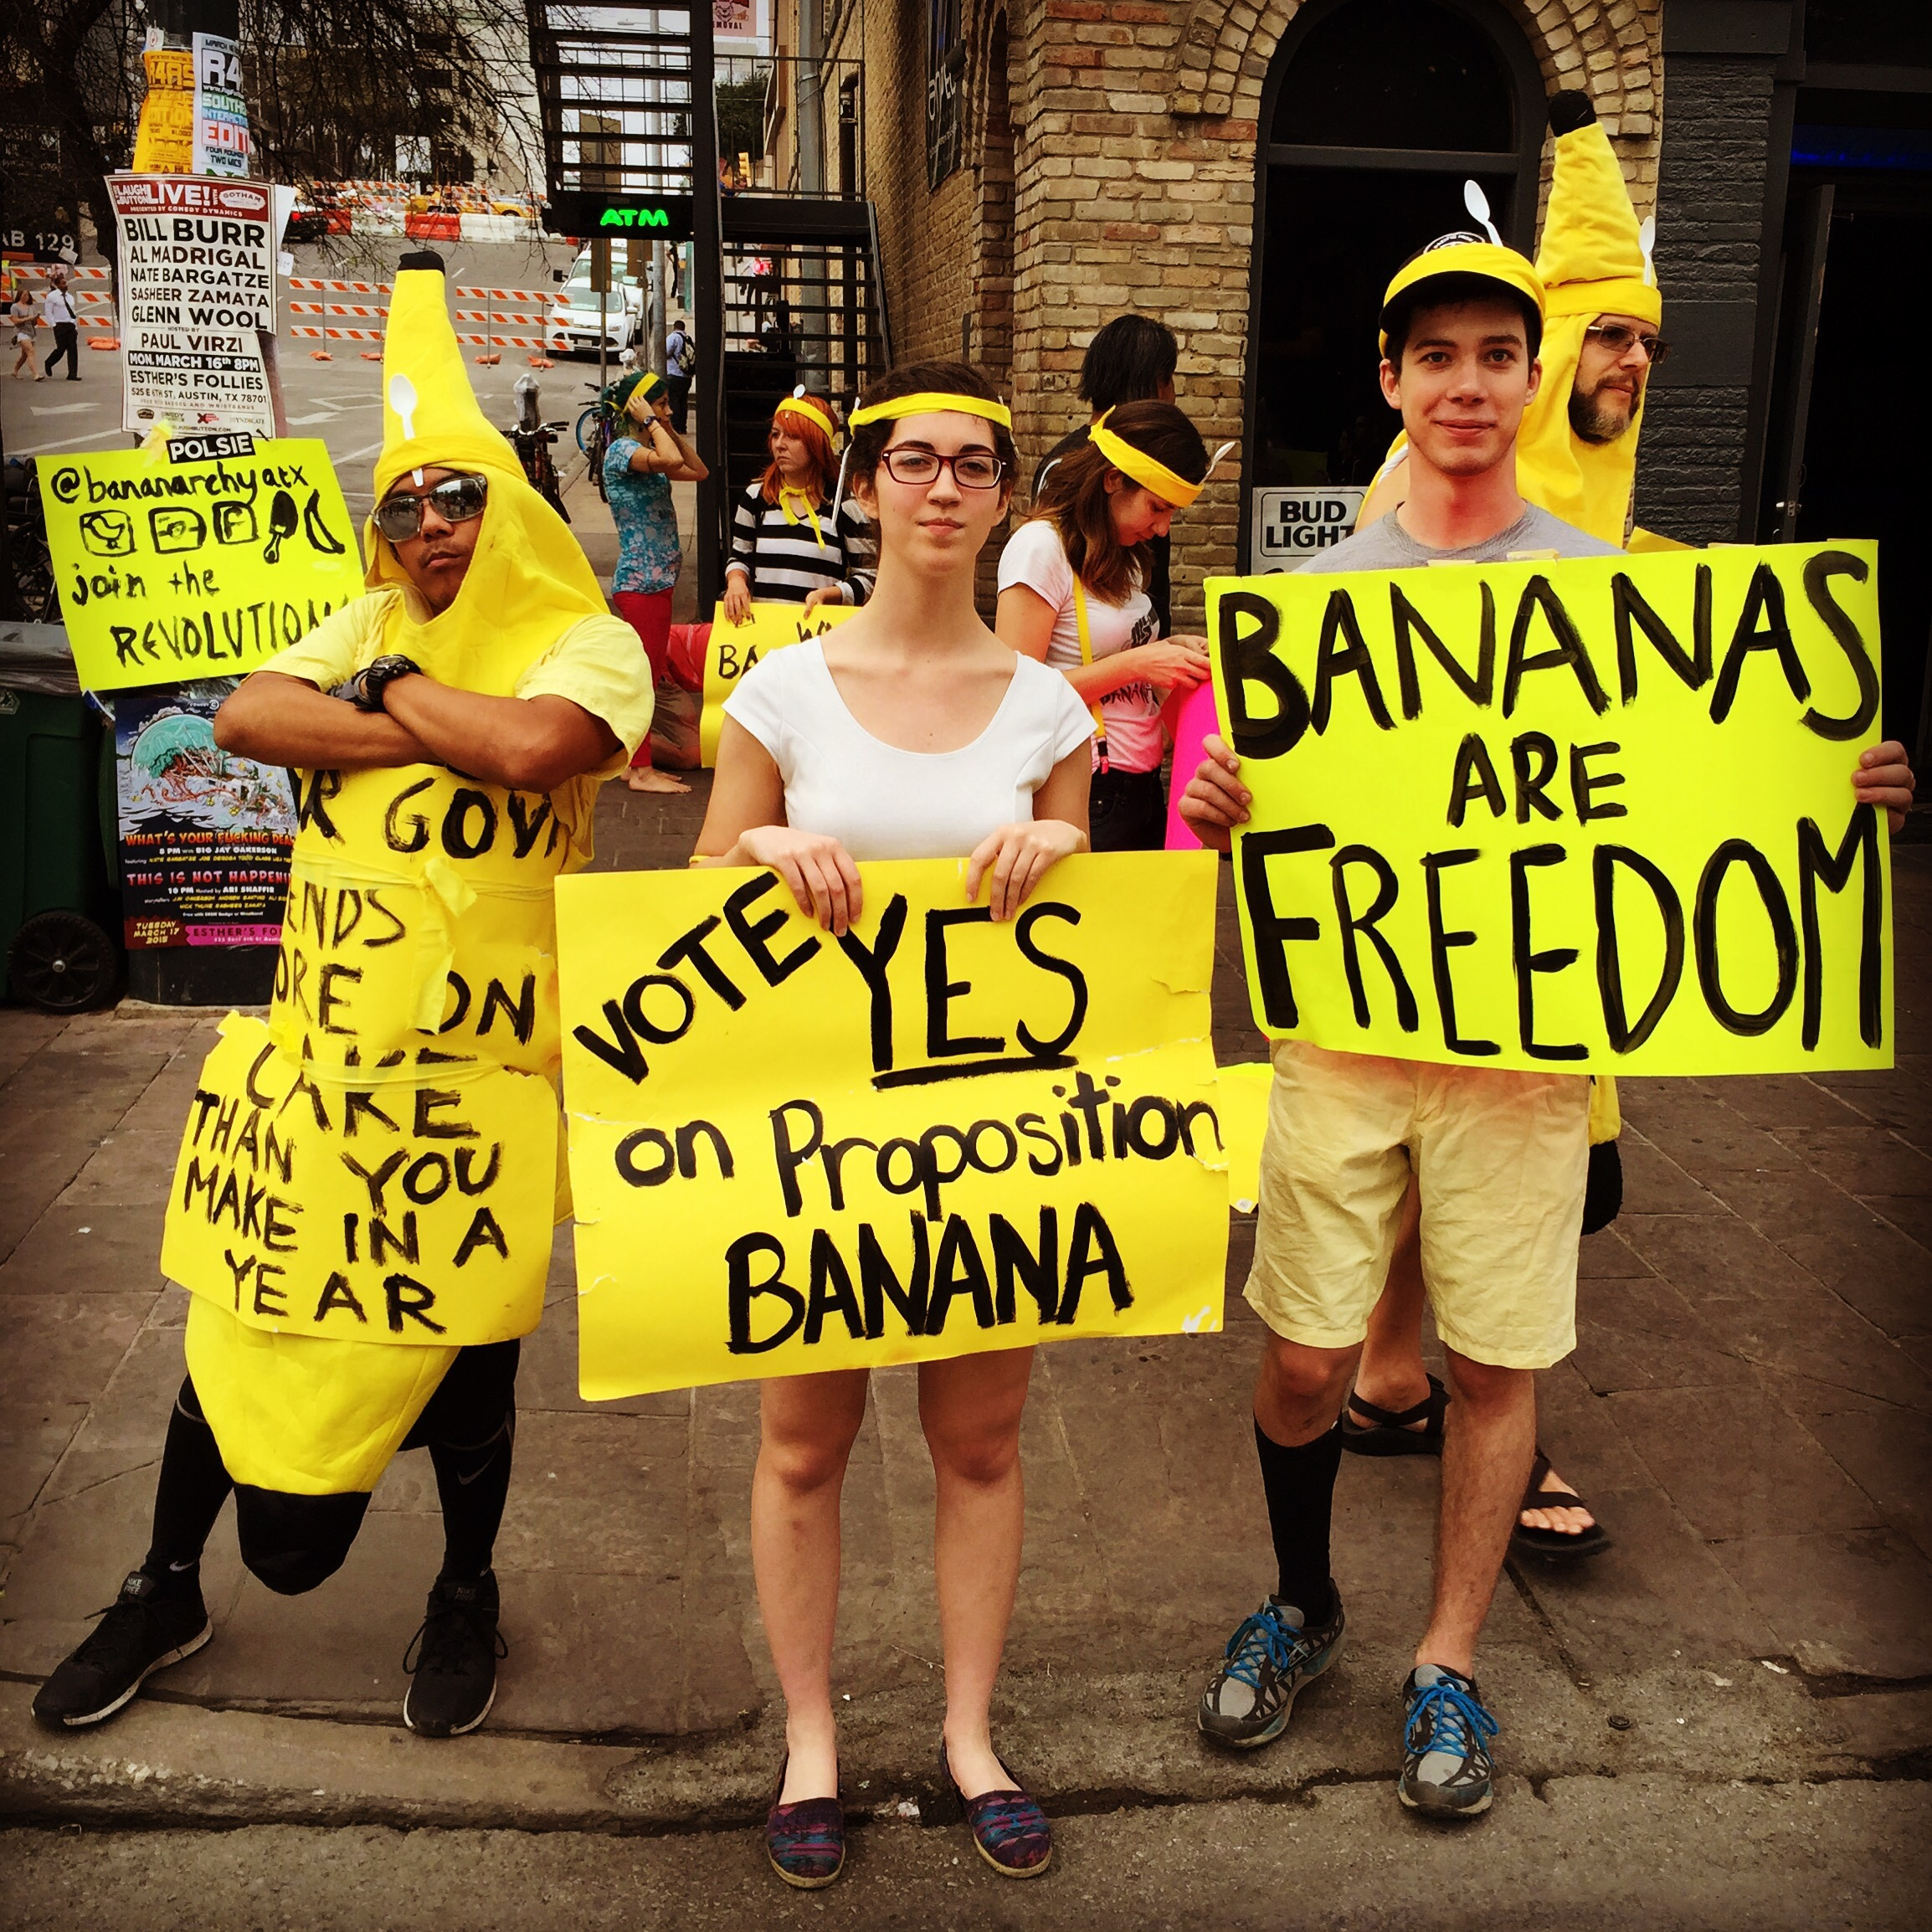 Proposition banana at SXSW